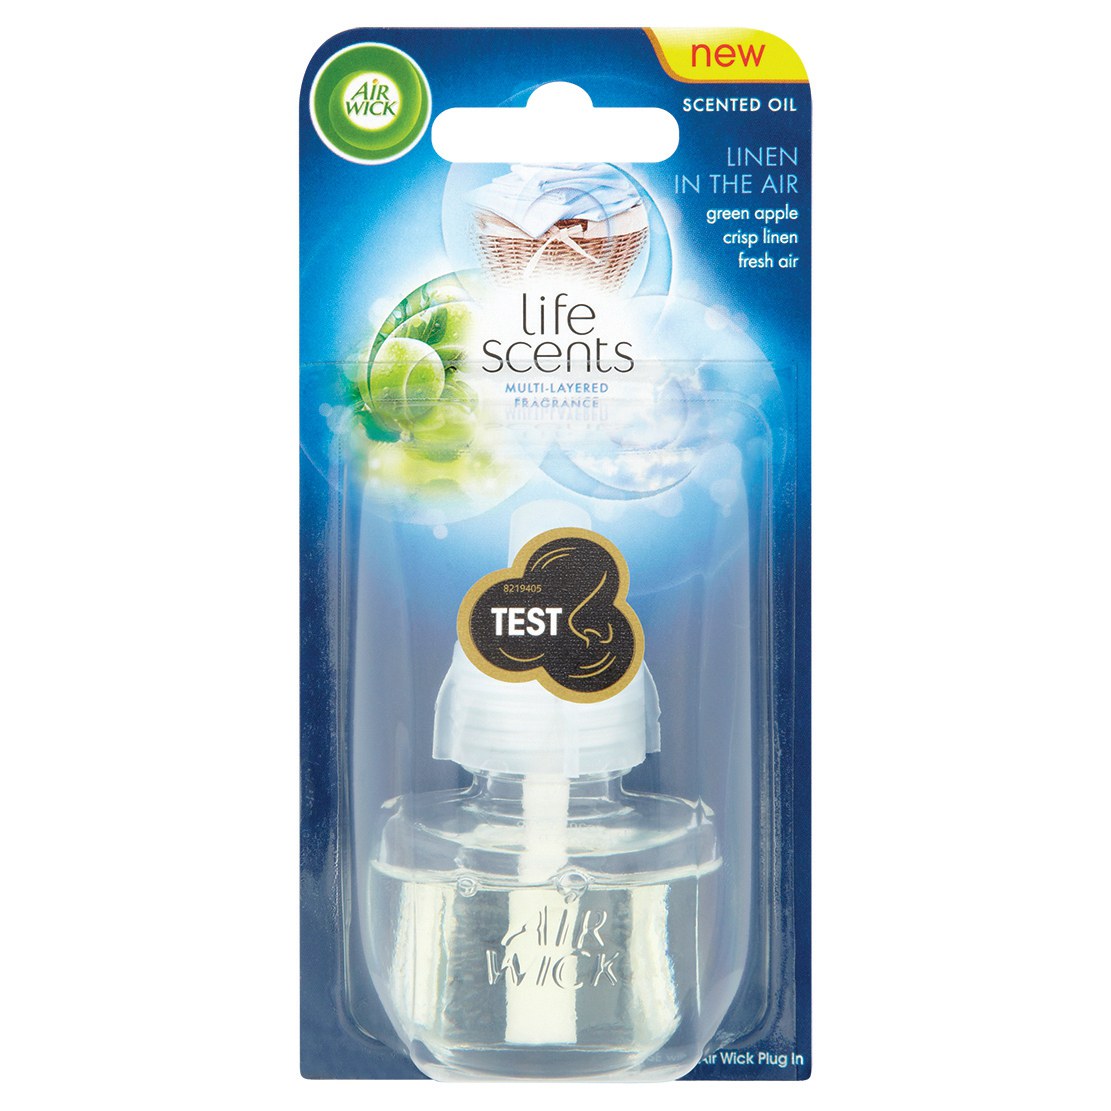 Air Wick Electrical Single Linen Air Room Fragrance Scented Oil Refill Max 80 Days Ref 3019263